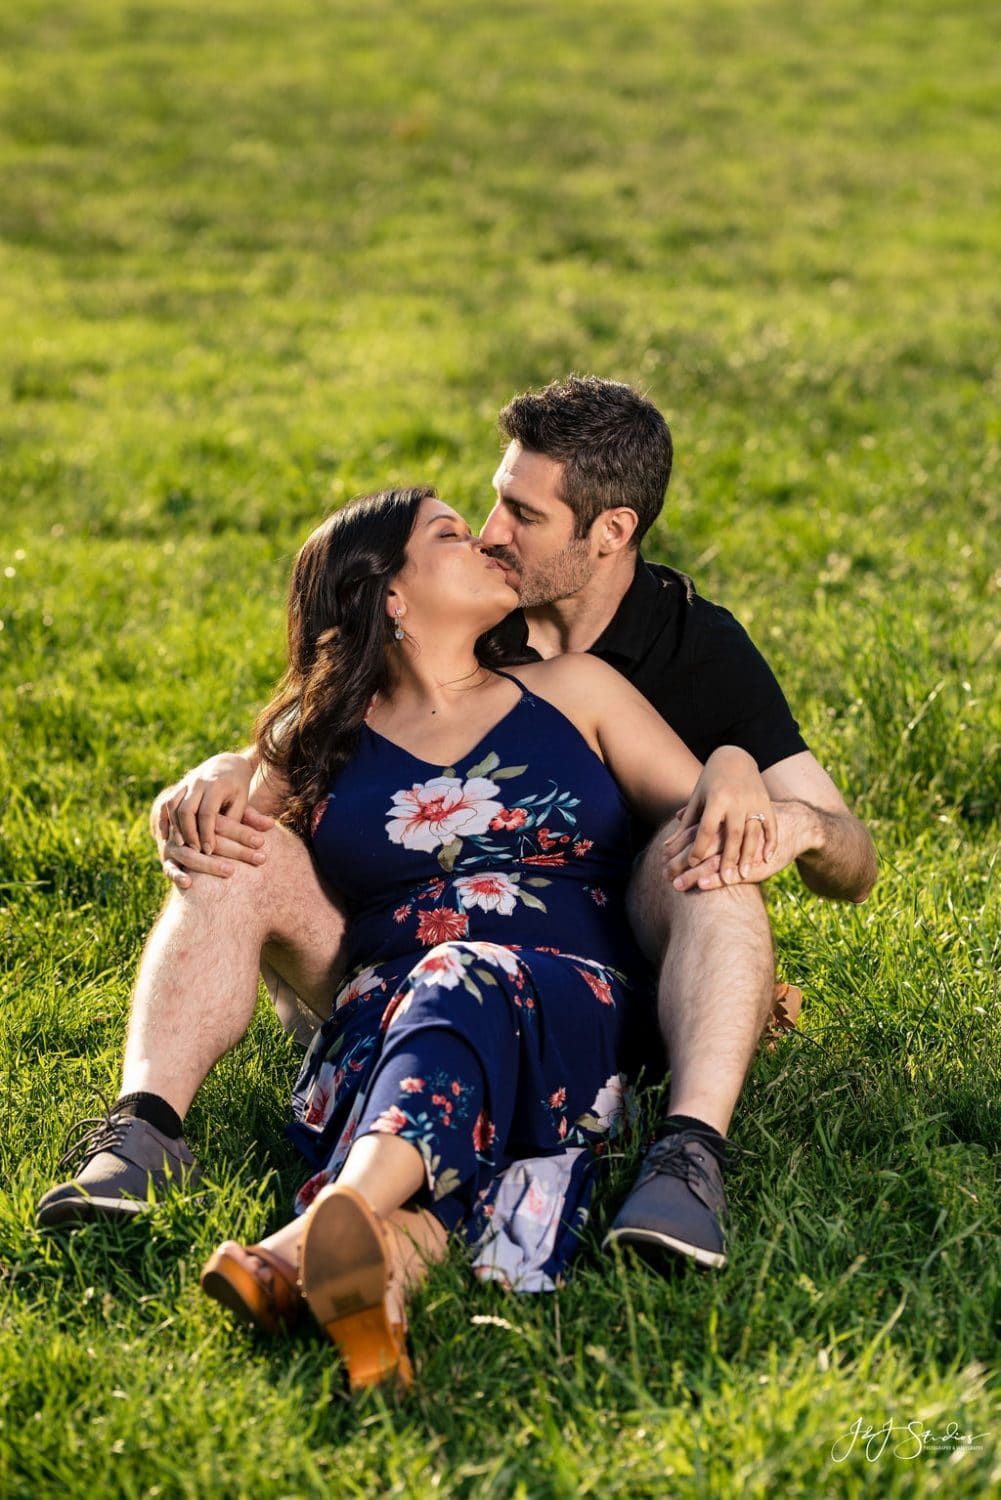 Couple in love kissing in park on green grass Fairmount Engagement Shot By John Ryan